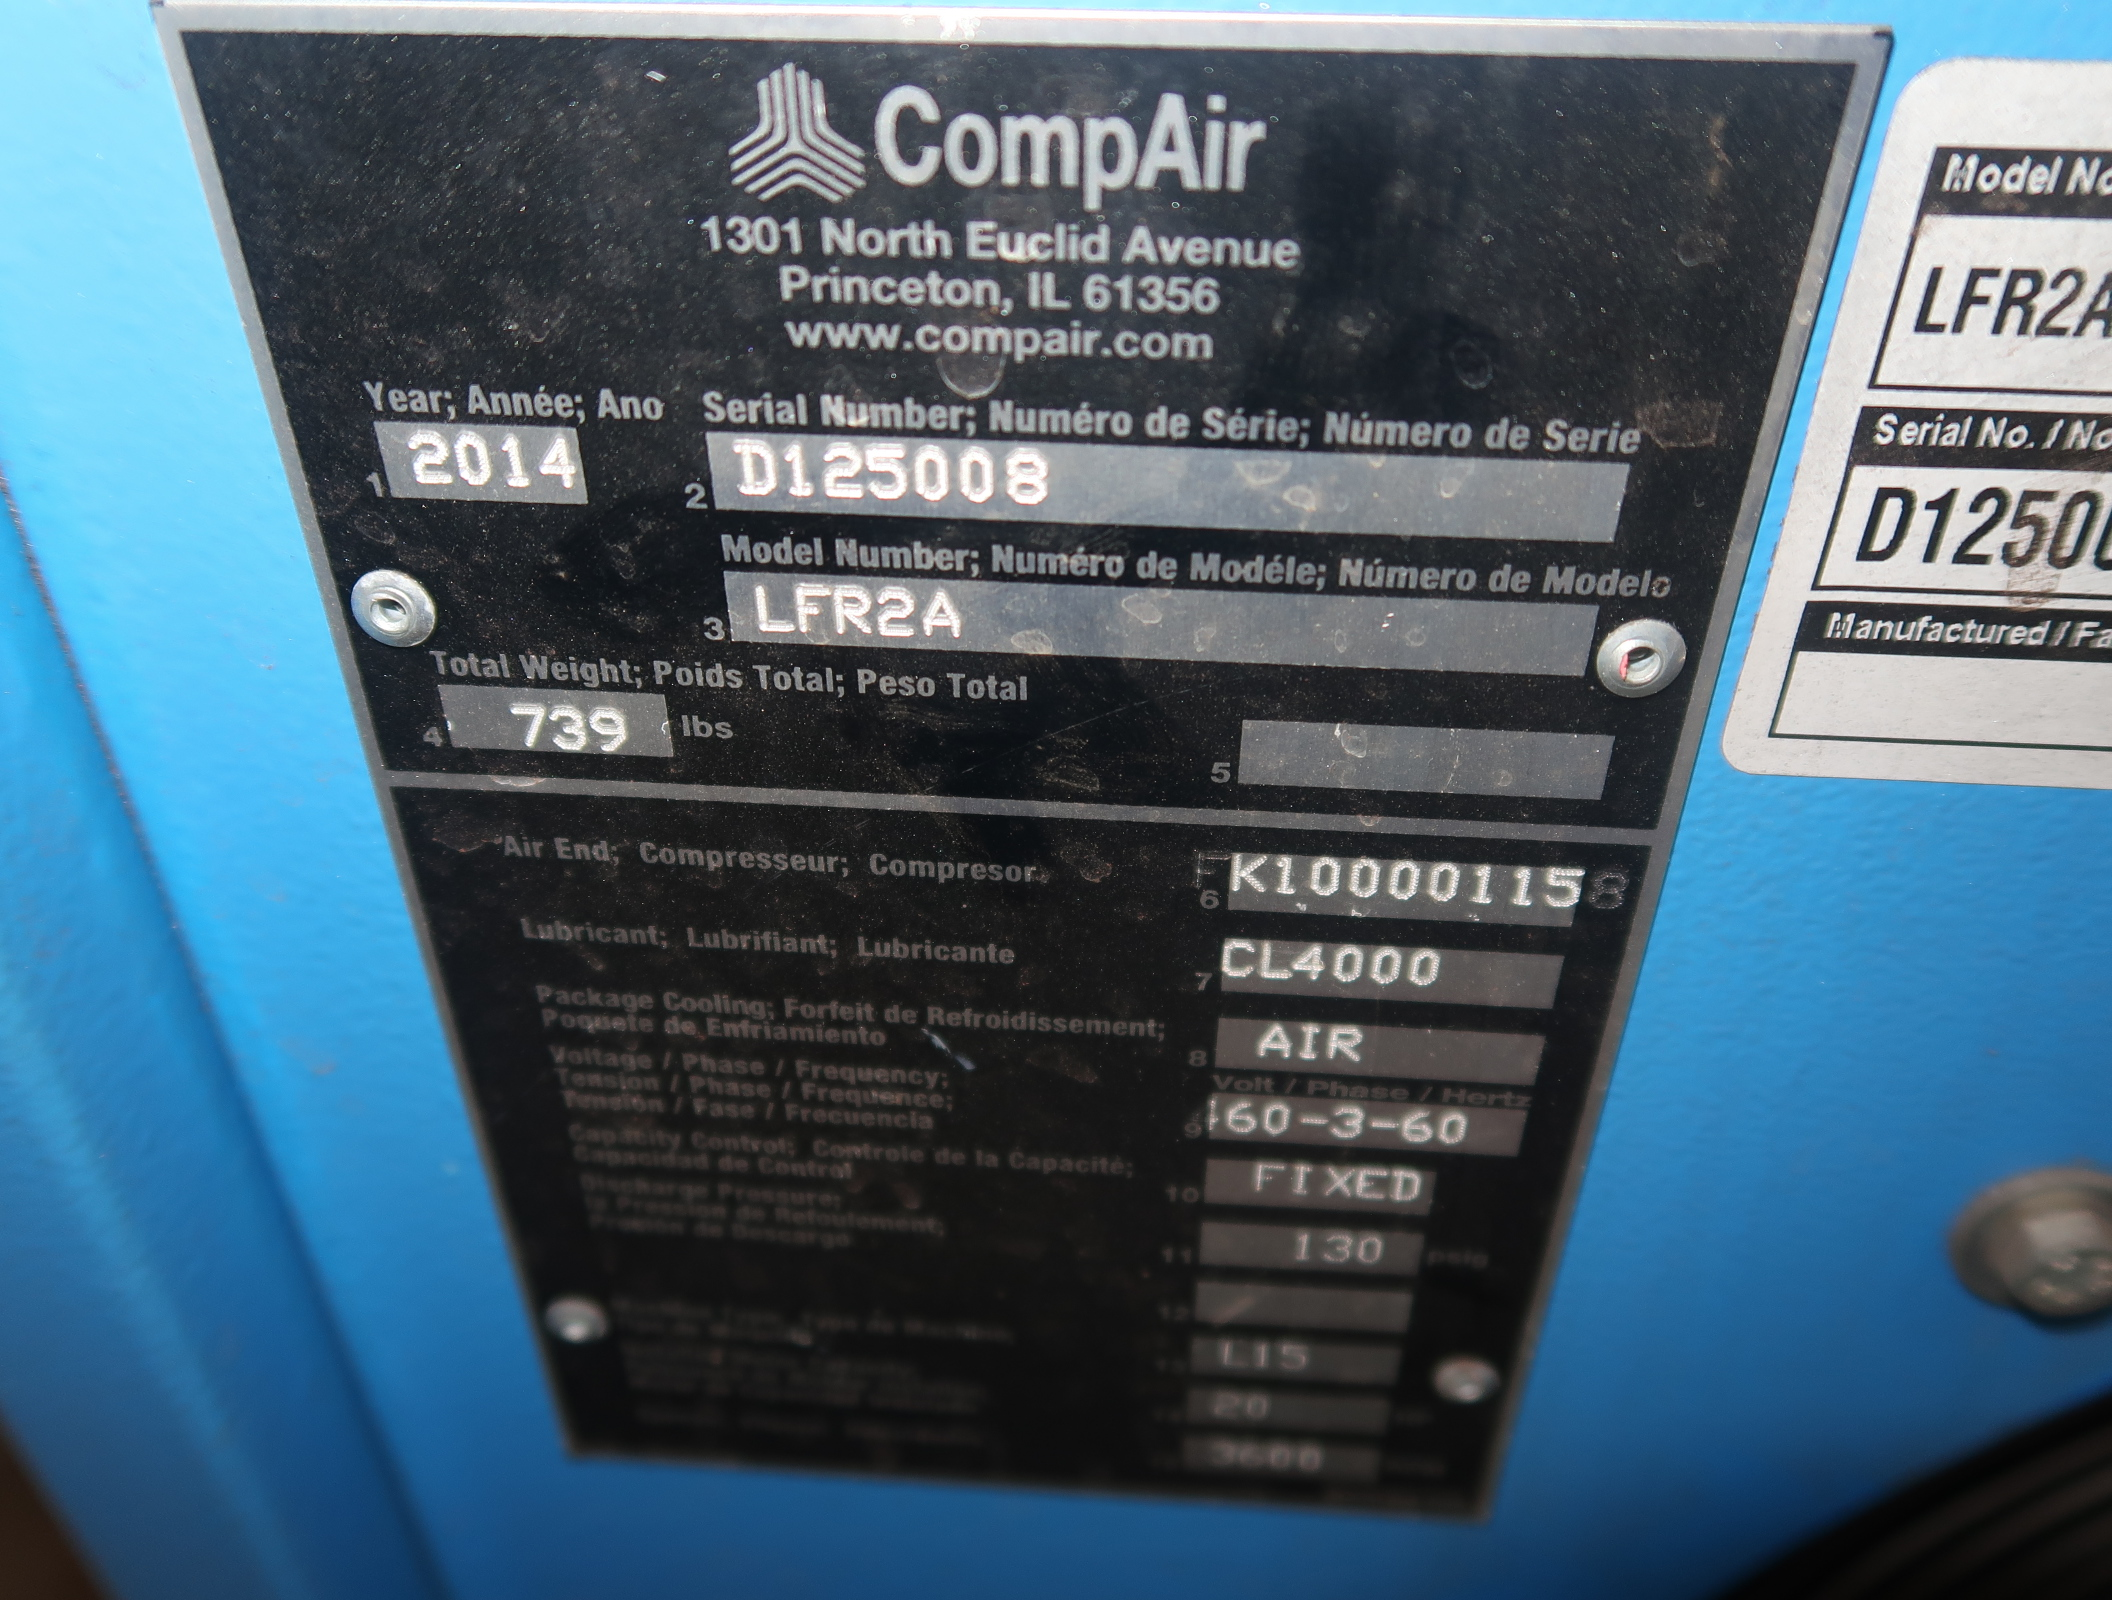 2014 COMP AIR 20HP ROTARY SCREW AIRCOMPRESSOR MDL. LFRZA, 3PH W/ VERTIAL AIR RECEIVER, SN. D125008 - Image 3 of 7